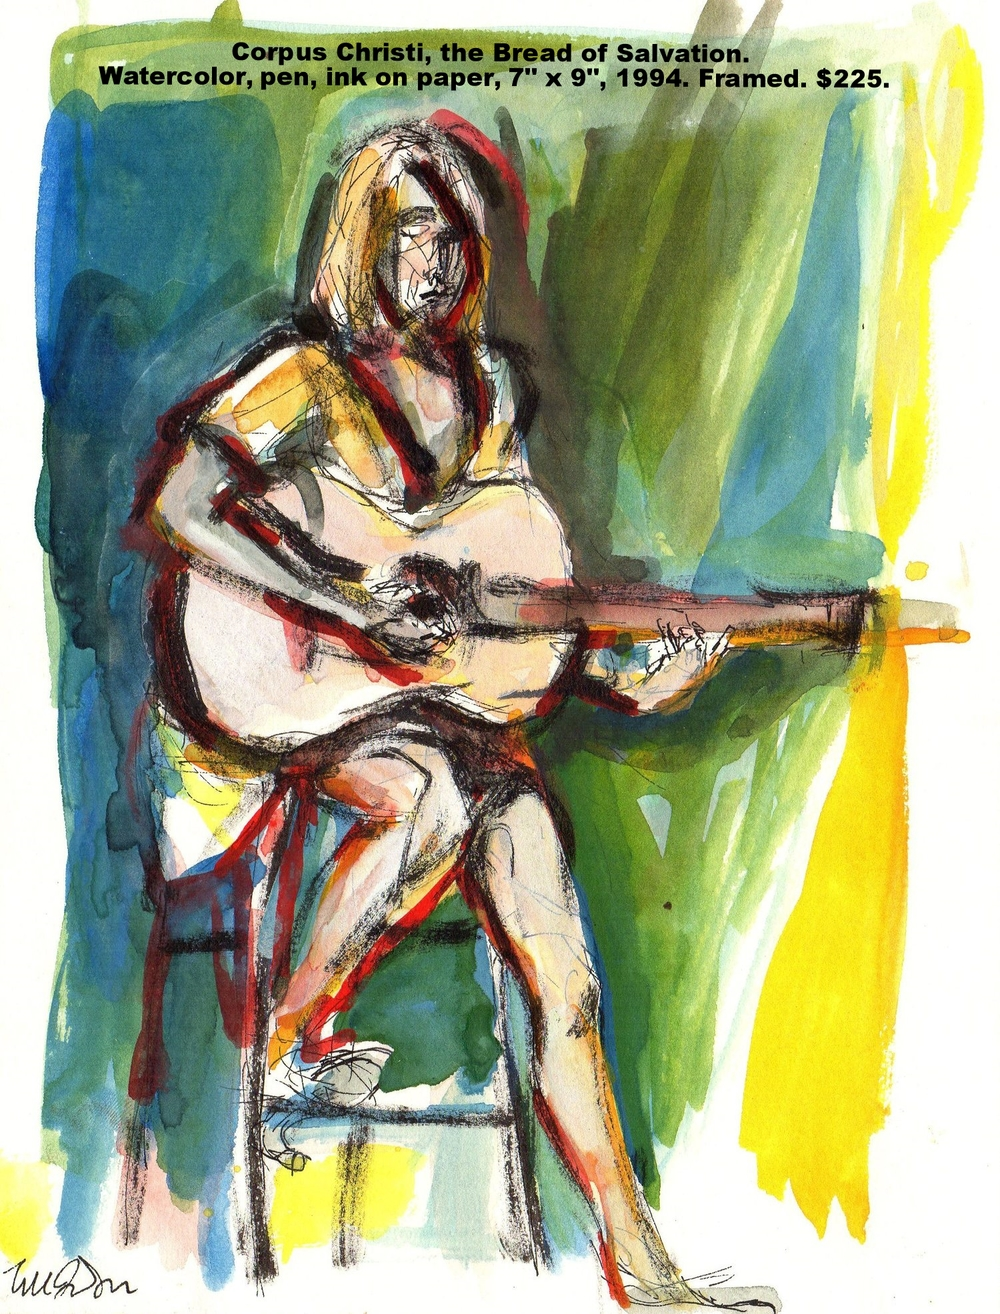 1 Fred Wise Corpus Christi the Bread of Salvation Watercolor pen and ink on paper 7 in x 9 in 1994.jpg